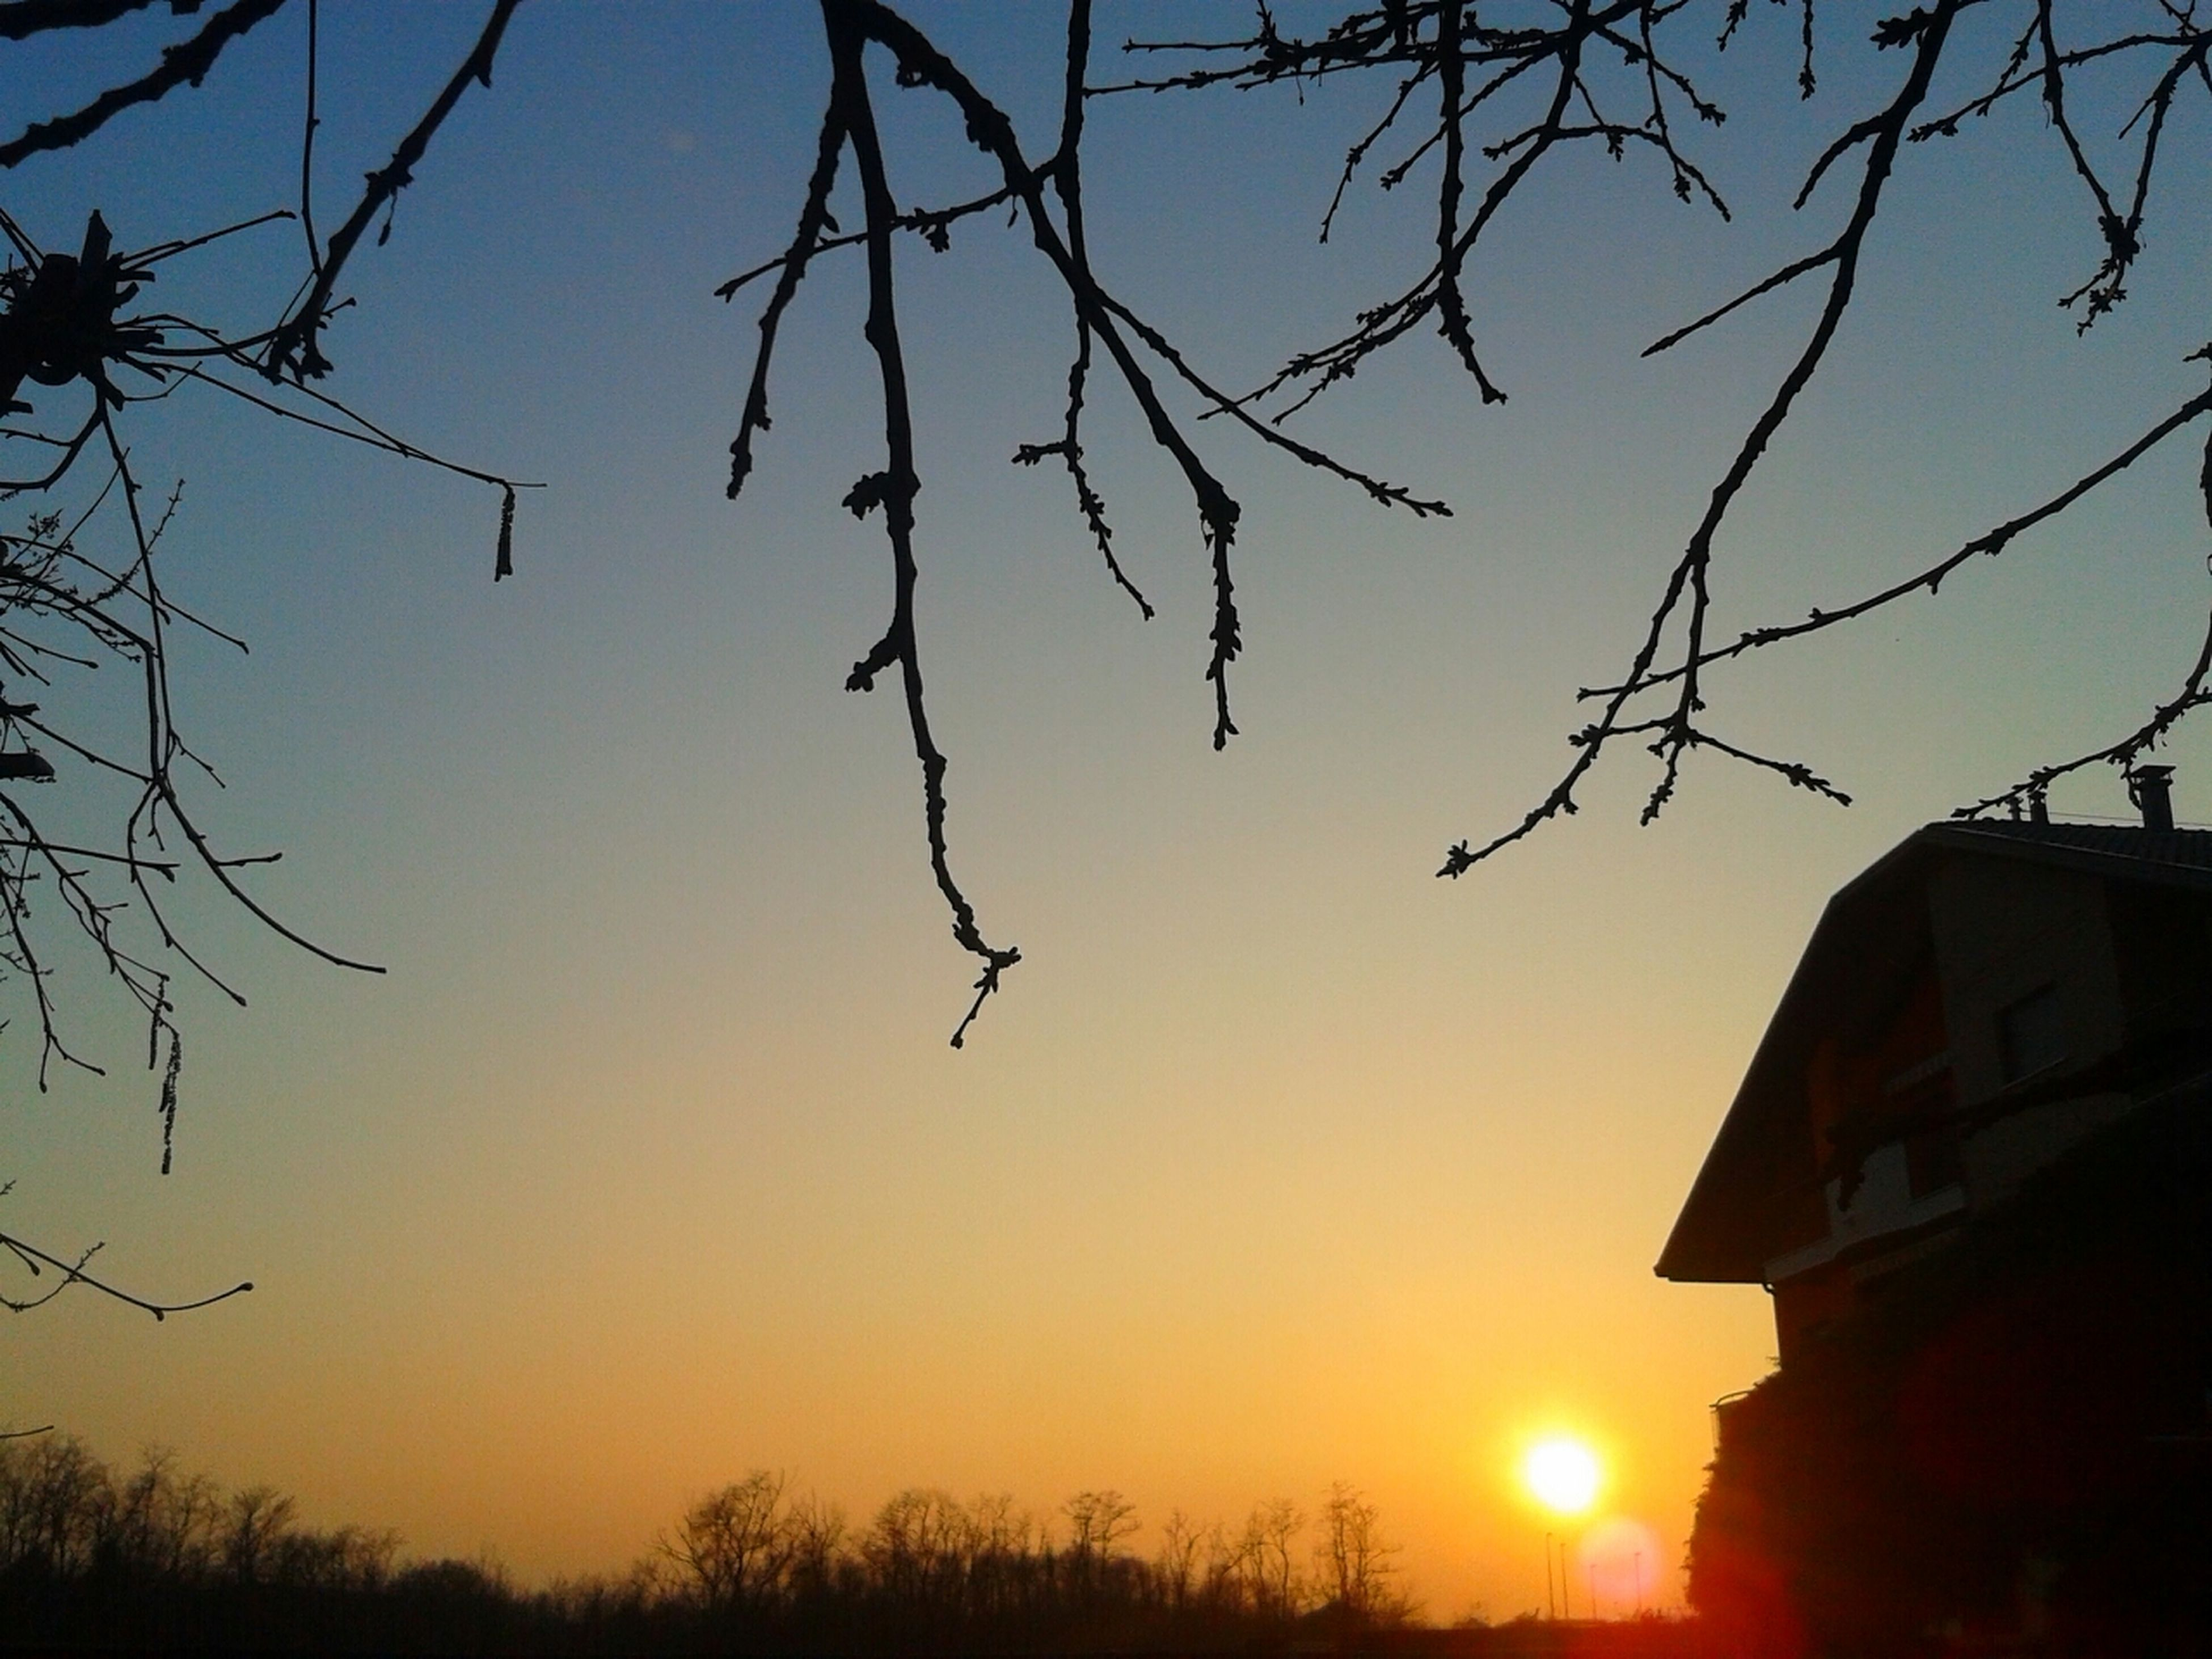 sunset, silhouette, bare tree, building exterior, tree, built structure, branch, architecture, orange color, sky, low angle view, sun, house, nature, beauty in nature, scenics, sunlight, clear sky, outdoors, tranquility